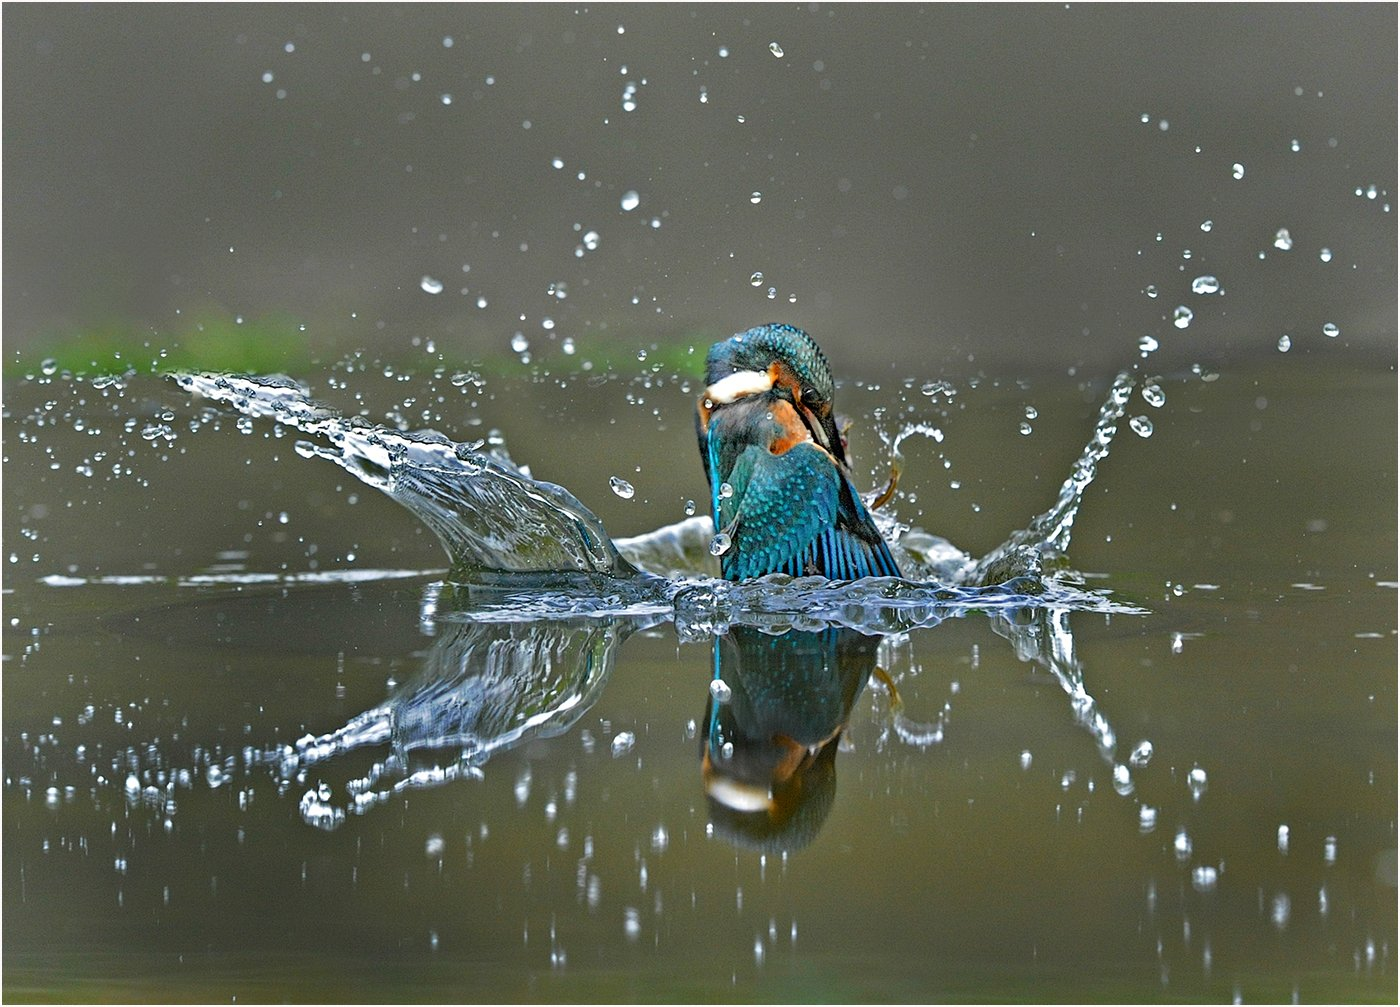 1st Place: Kingfisher Exiting the Water (Margaret Tabner)